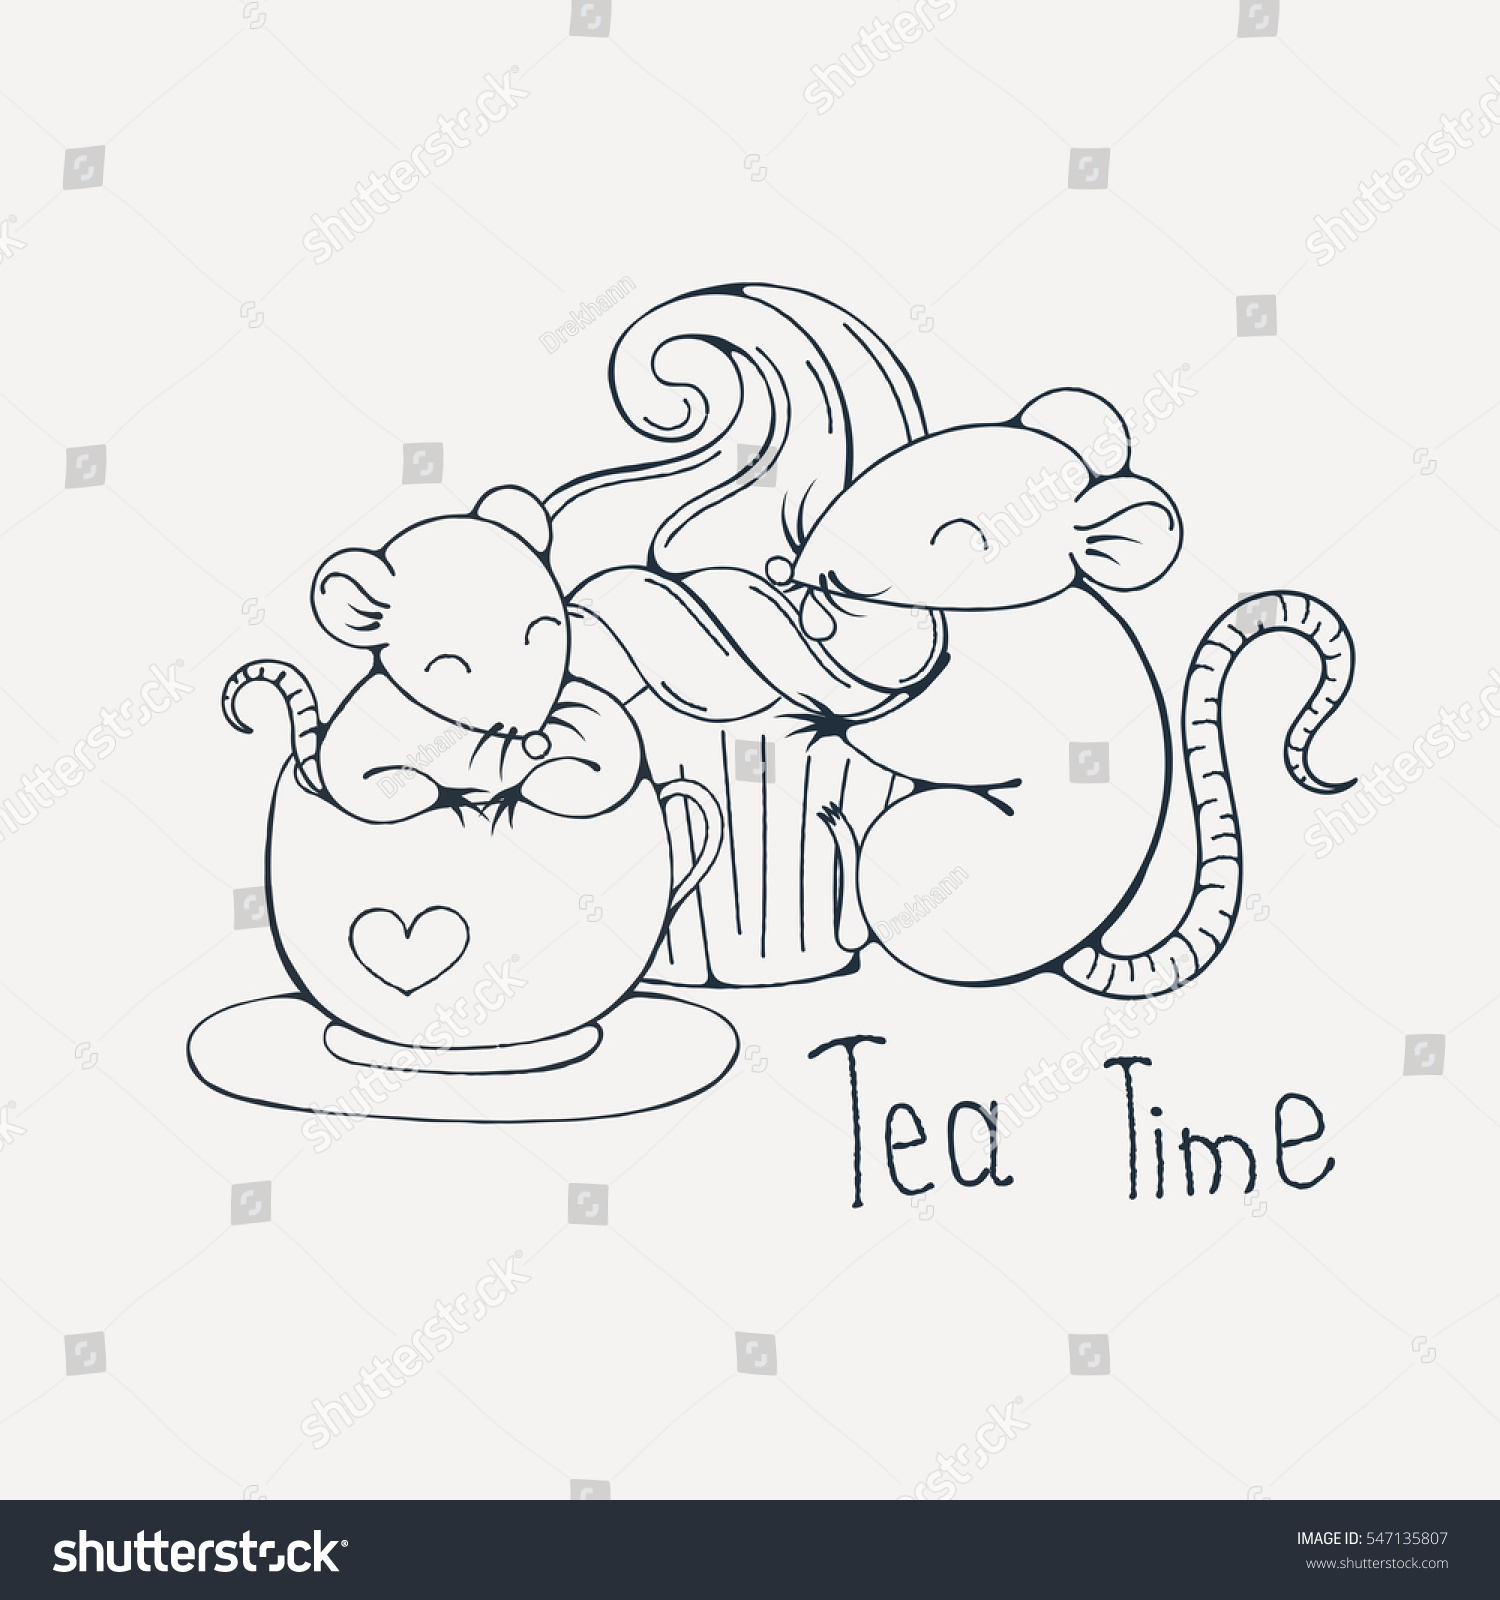 Illustration Cute Rat Cup Tea Coffee Stock Illustration 547135807 ...